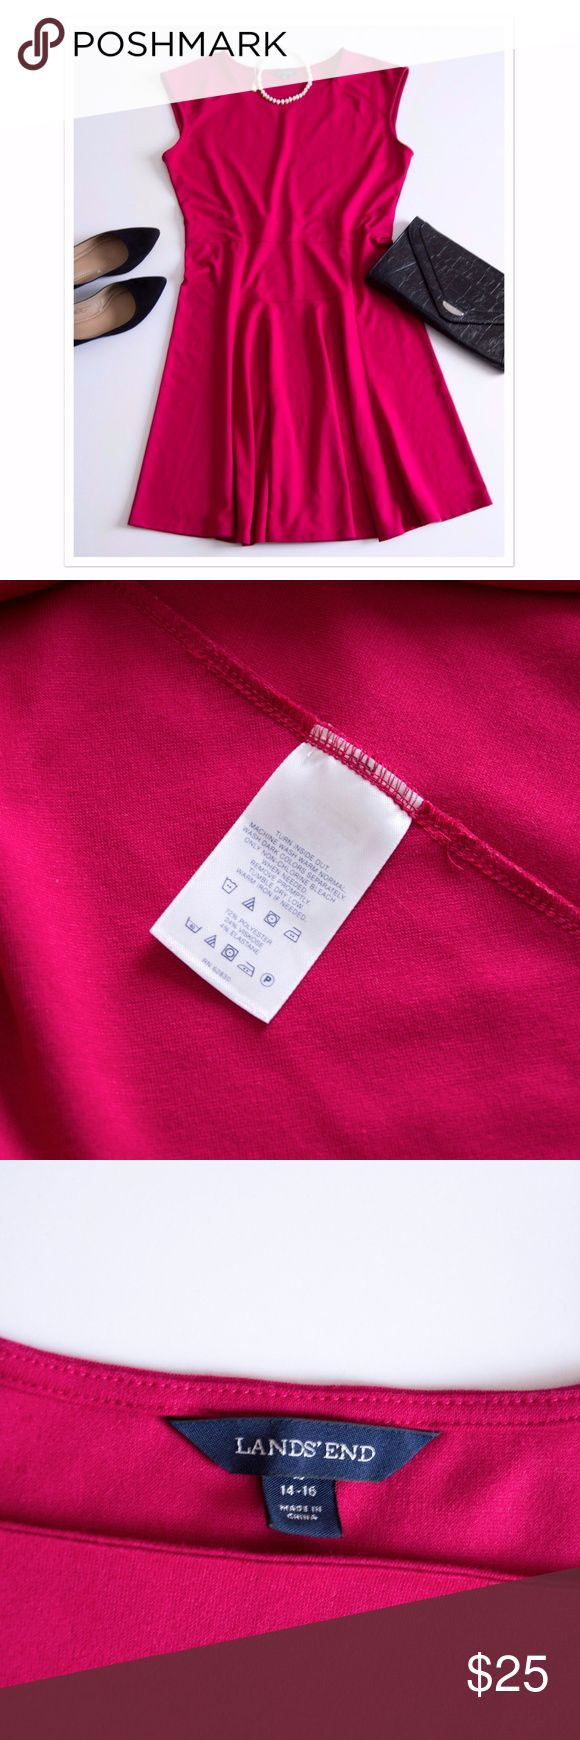 """Land's End Fuchsia Dark Pink Fit and Flare Dress L Size 14-16. This beautiful easy to wear dress can be dressed up or down. It features cap sleeves, seams at the waist and a flared bottom. Square neckline. 72% polyester, 24% viscose and 4% elastane. The Land's End 14-16 or Large size body measurements listed on their website are 40-42'' bust, 33.5""""-36.5"""" waist, 43""""-44.5"""" hips. Above knee length. Approximately 43"""" total length. Land's End Dresses Midi"""